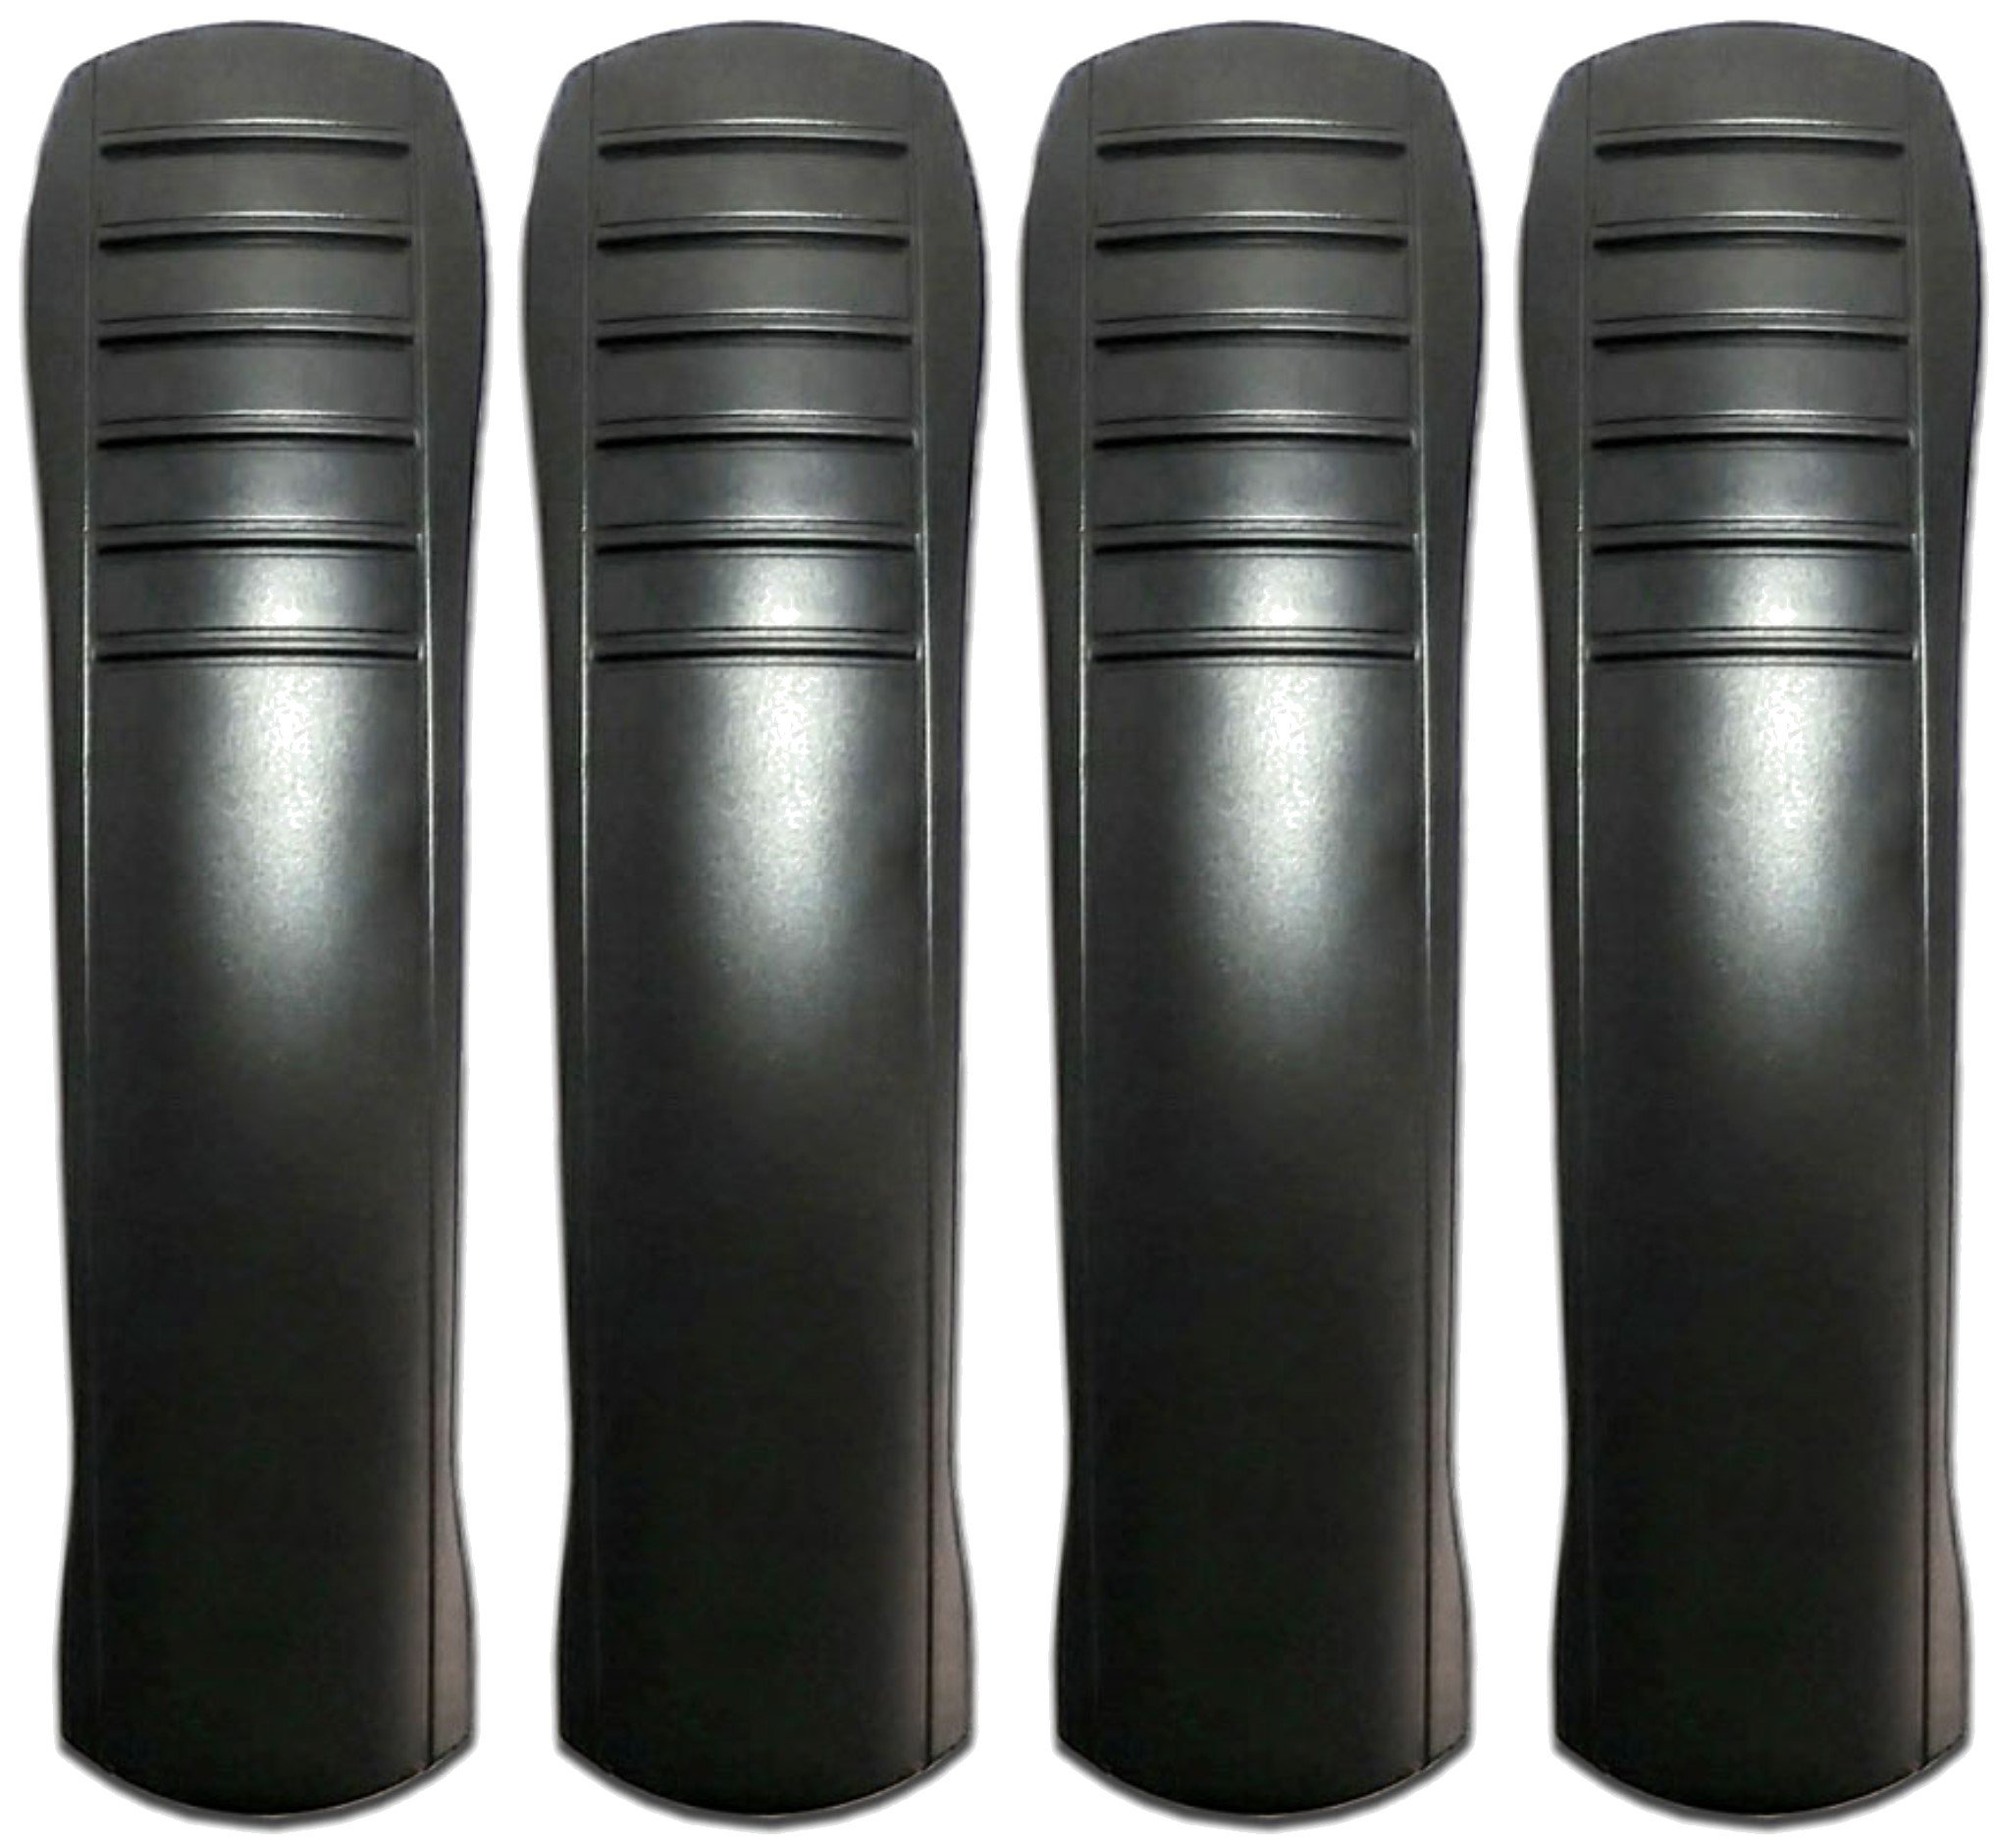 Mitel 5300 Compatible Handset (4 Pack) Fits 5304, 5312, 5320, 5320e, 5324, 5330, 5330e, 5340, 5340e, and 5360. Also Fits 5207, 5215, 5220, and 5235 by ineedITparts.com